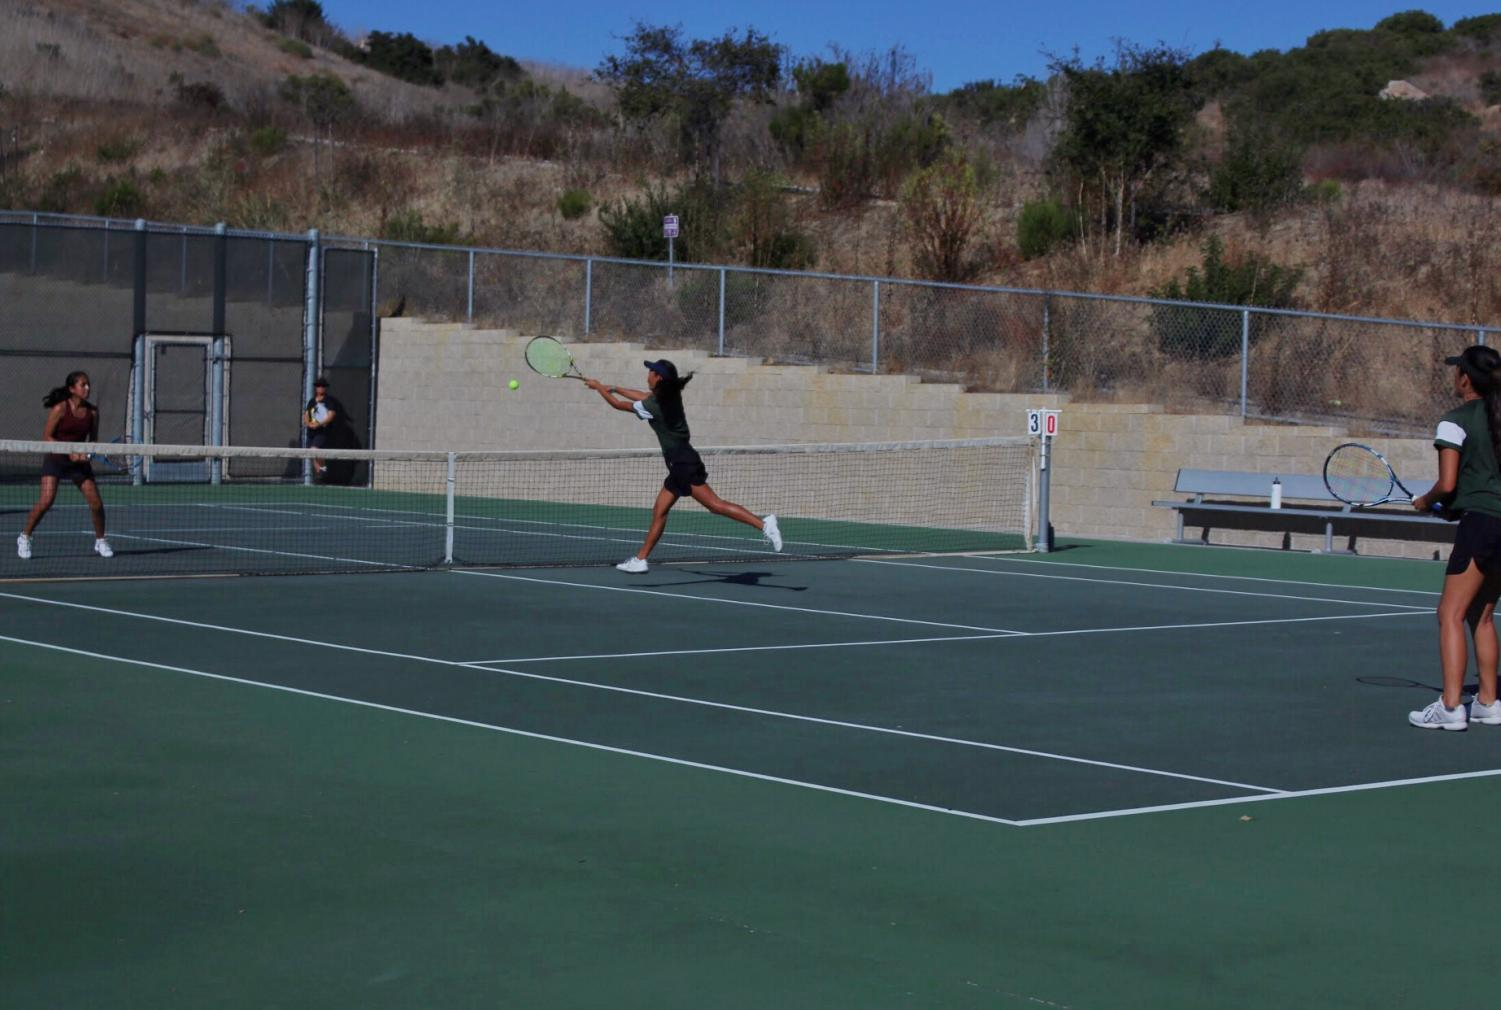 Sophomore+Isla+Leverette+quickly+dashes+to+the+net+for+a+strong+hit.+Girls+tennis+beat+Rancho+Buena+Vista+3-5+on+Oct.+3.+